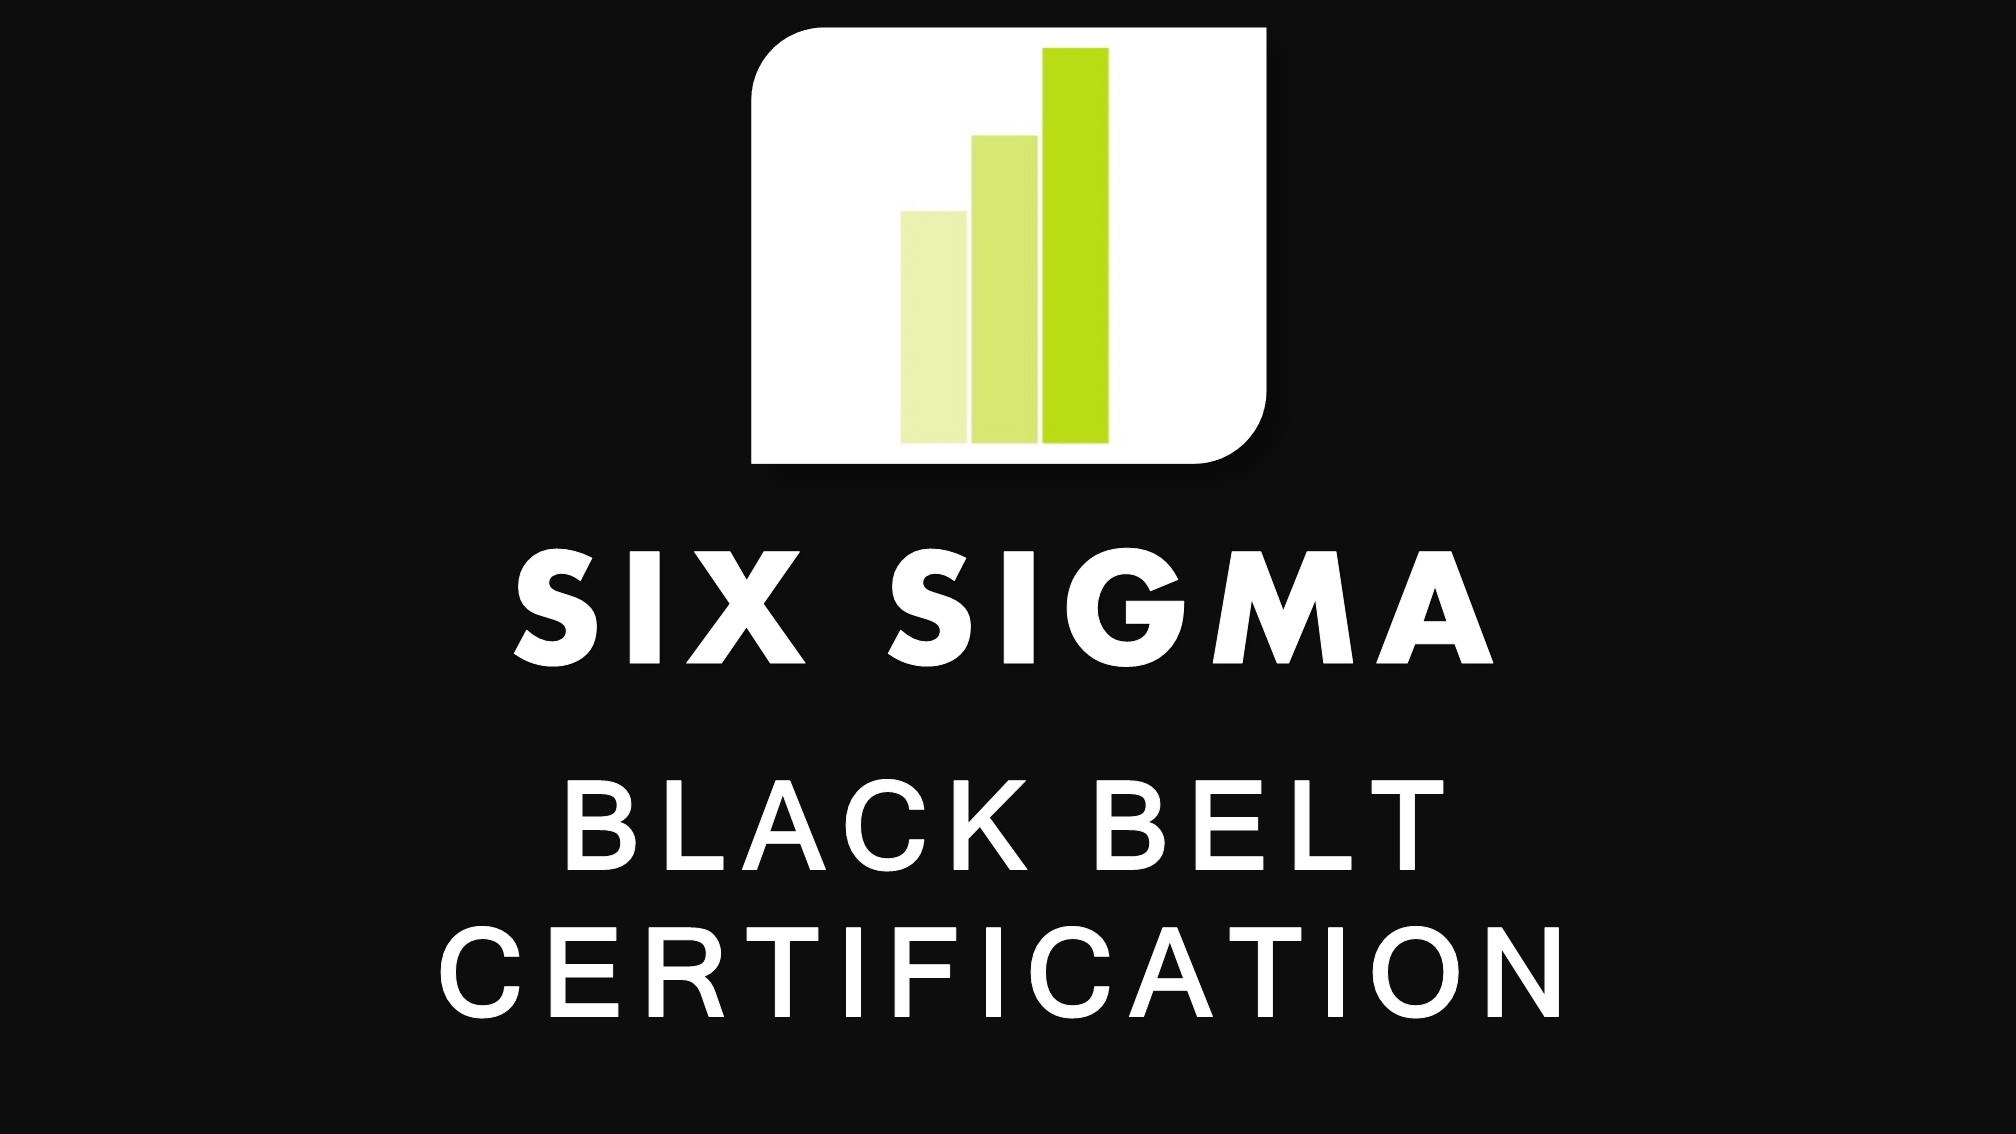 Six Sigma Black Belt Training Course And Certification Australia